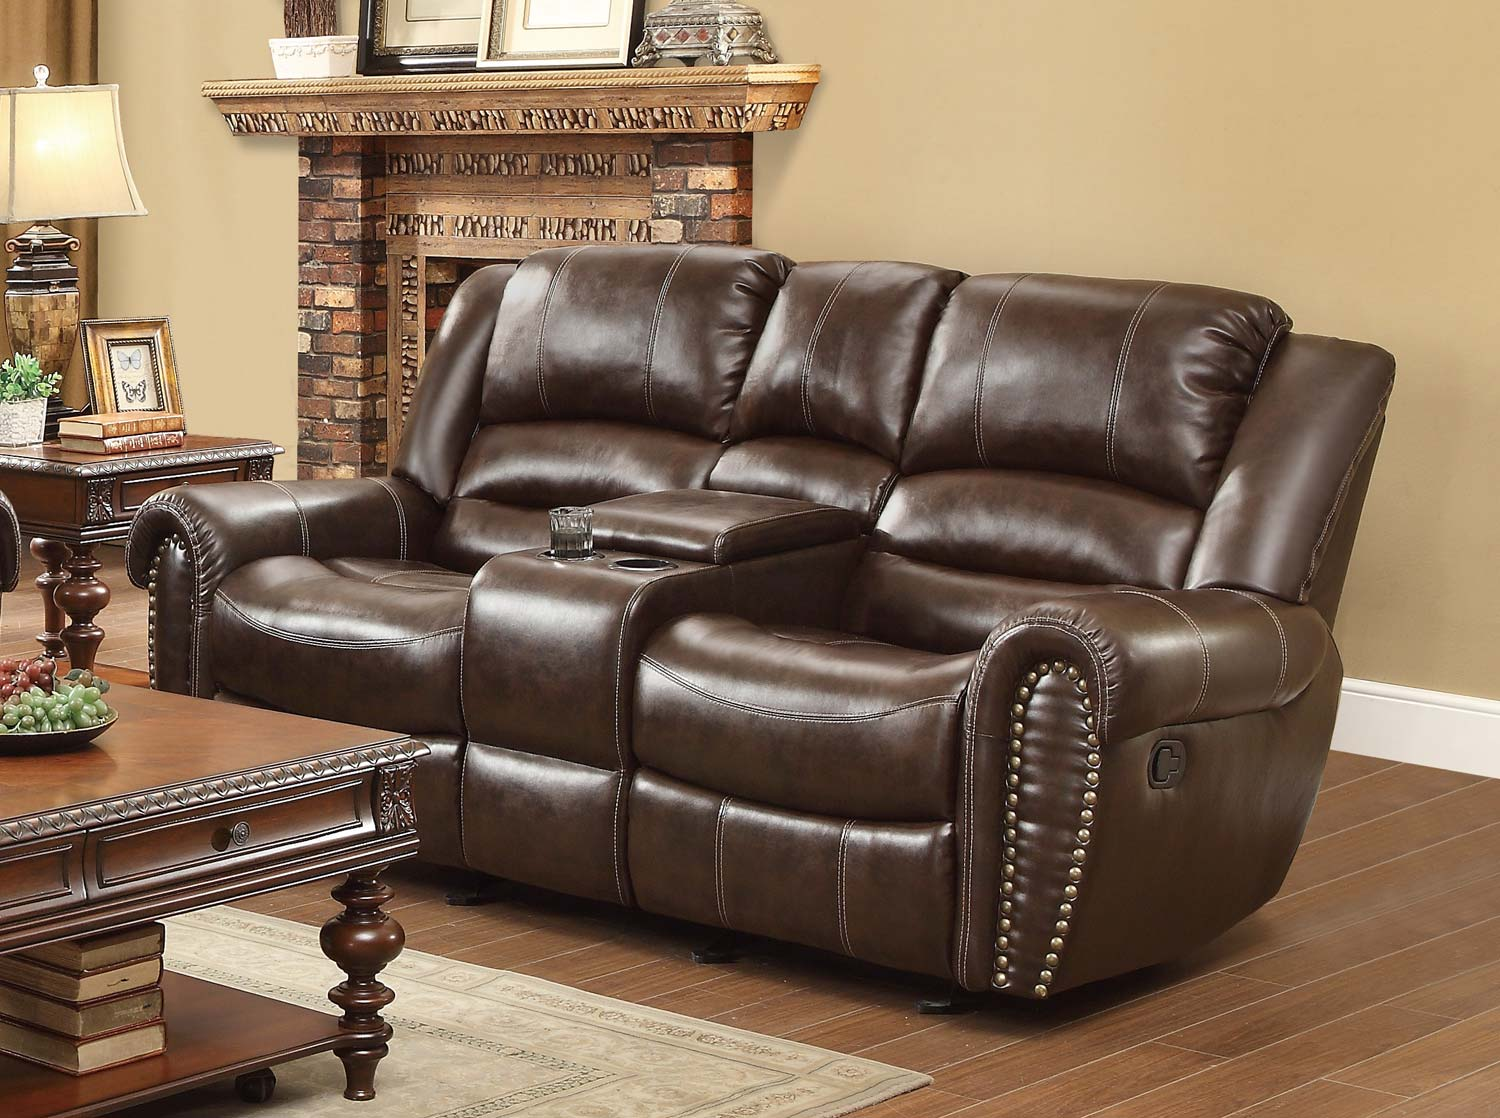 Homelegance Center Hill Double Glider Reclining Love Seat with Center Console - Dark Brown Bonded Leather Match